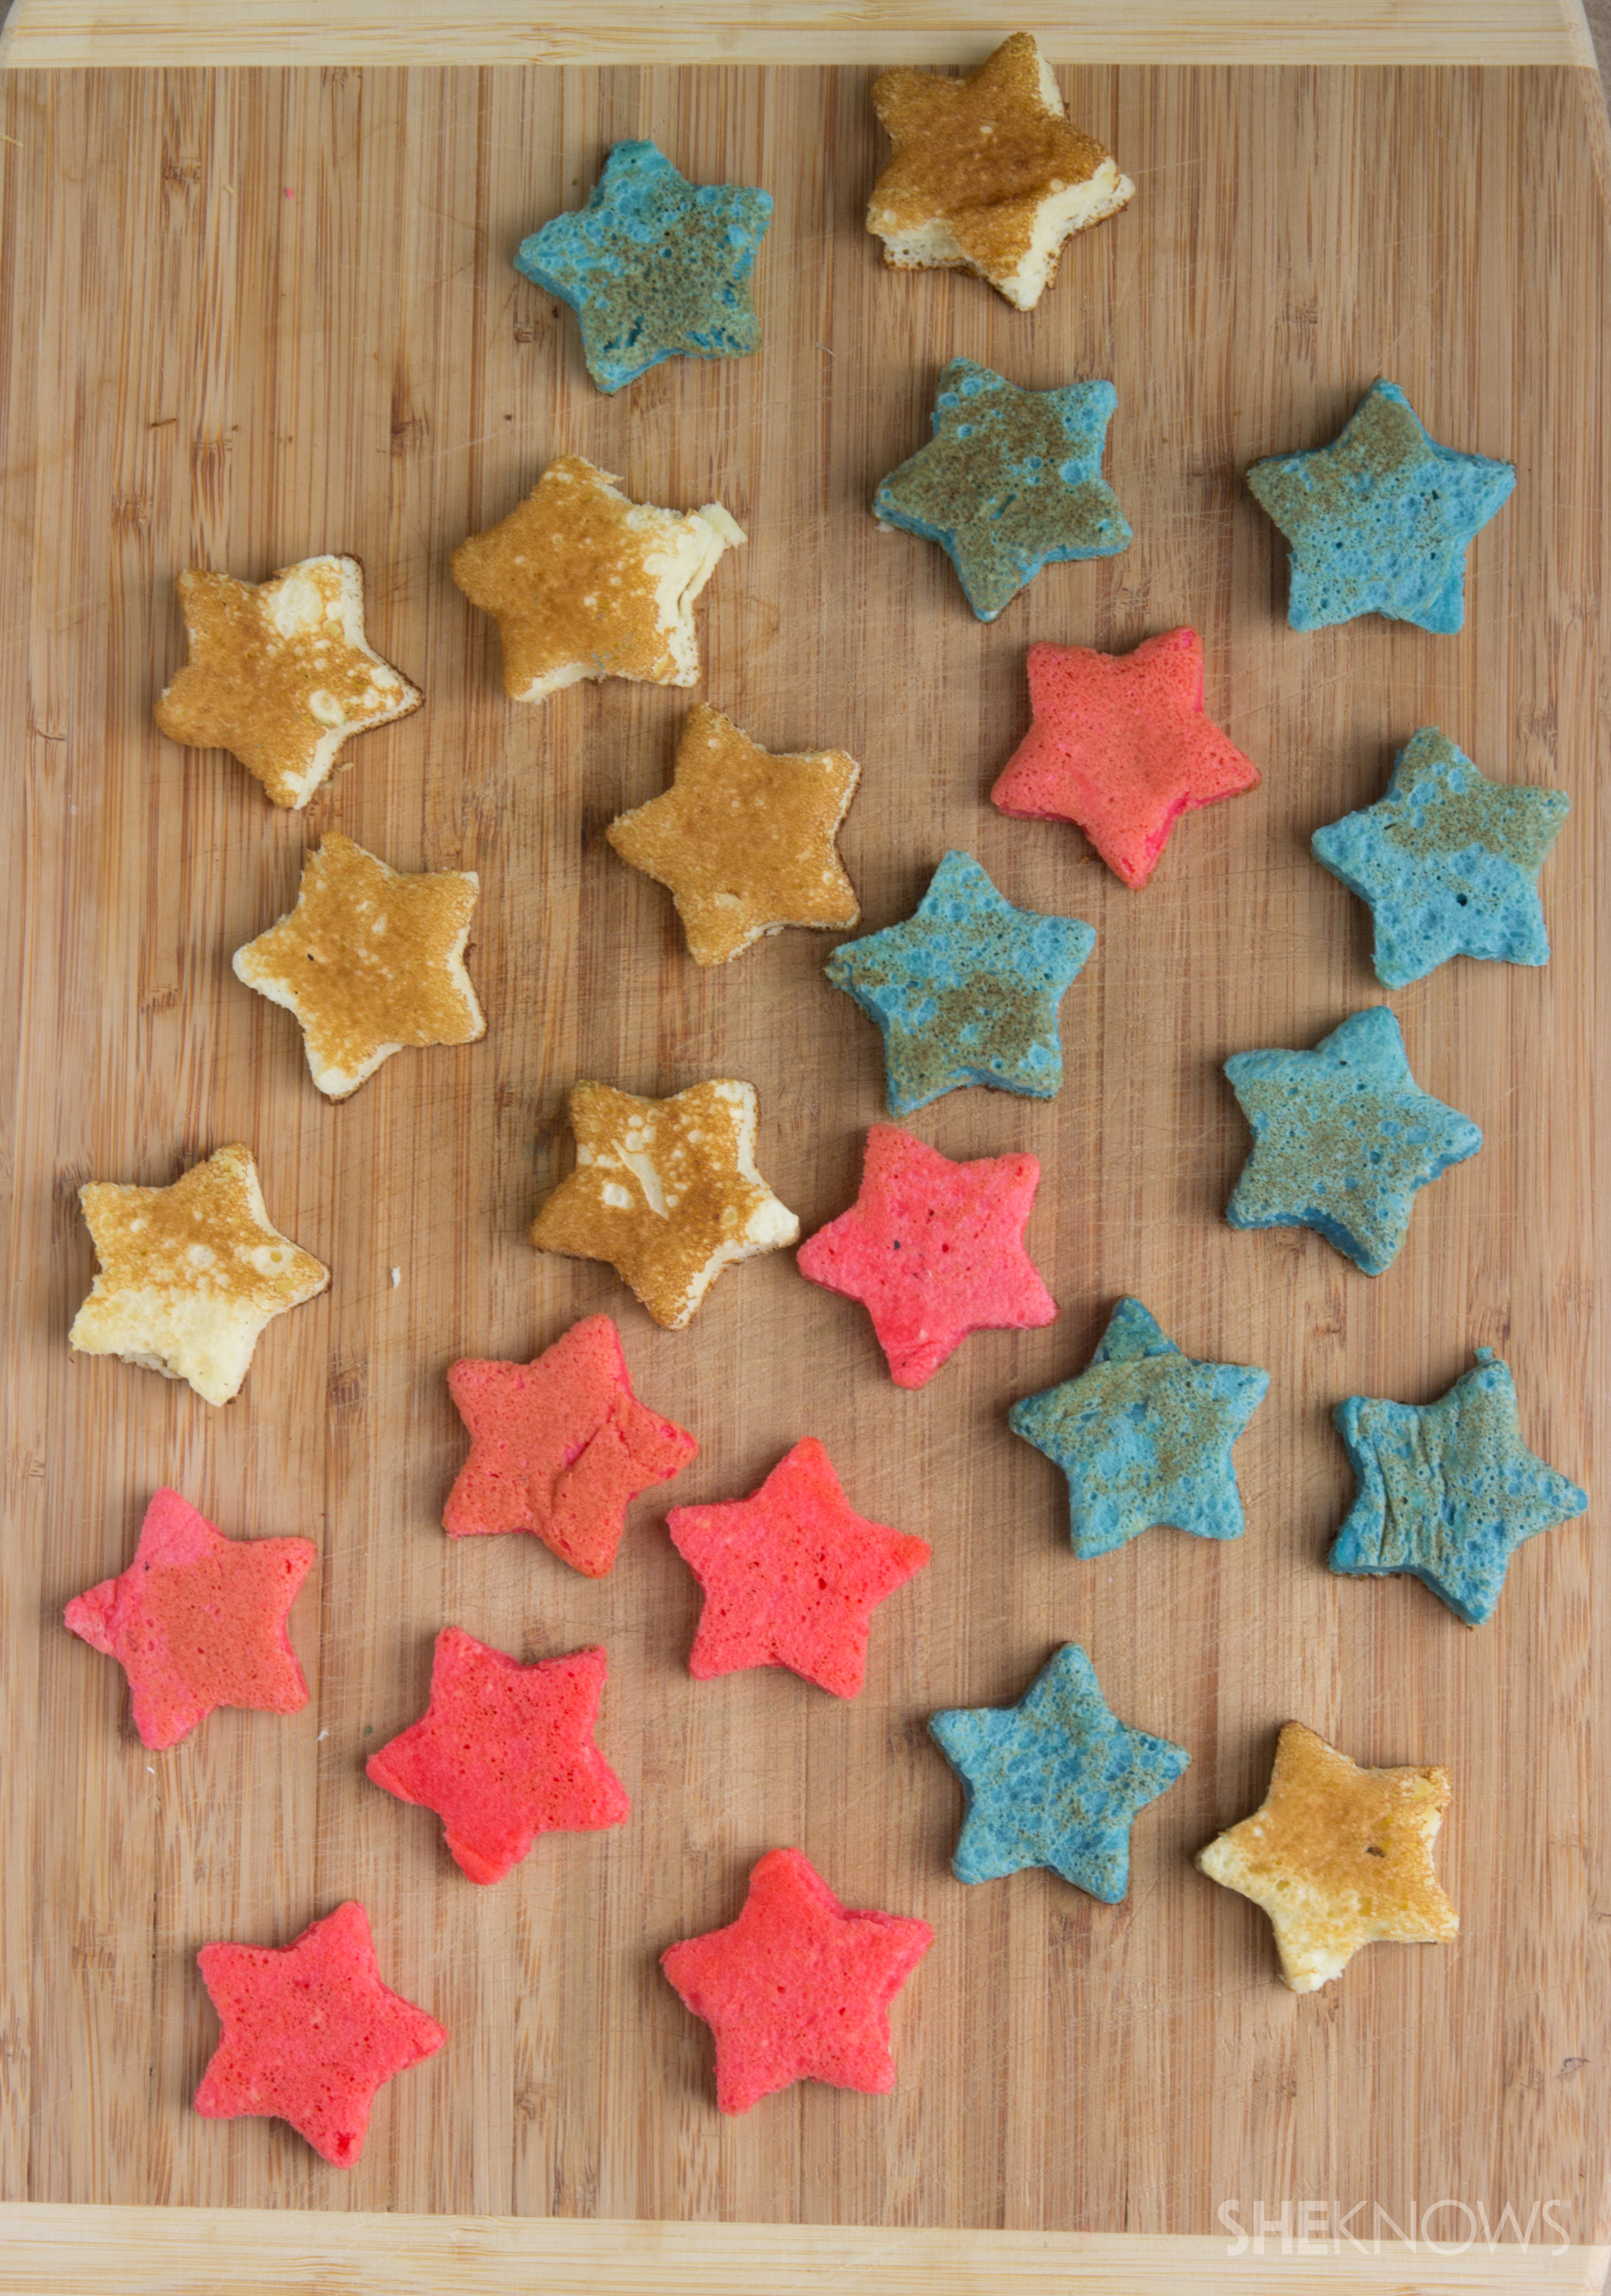 Star pancake skewers